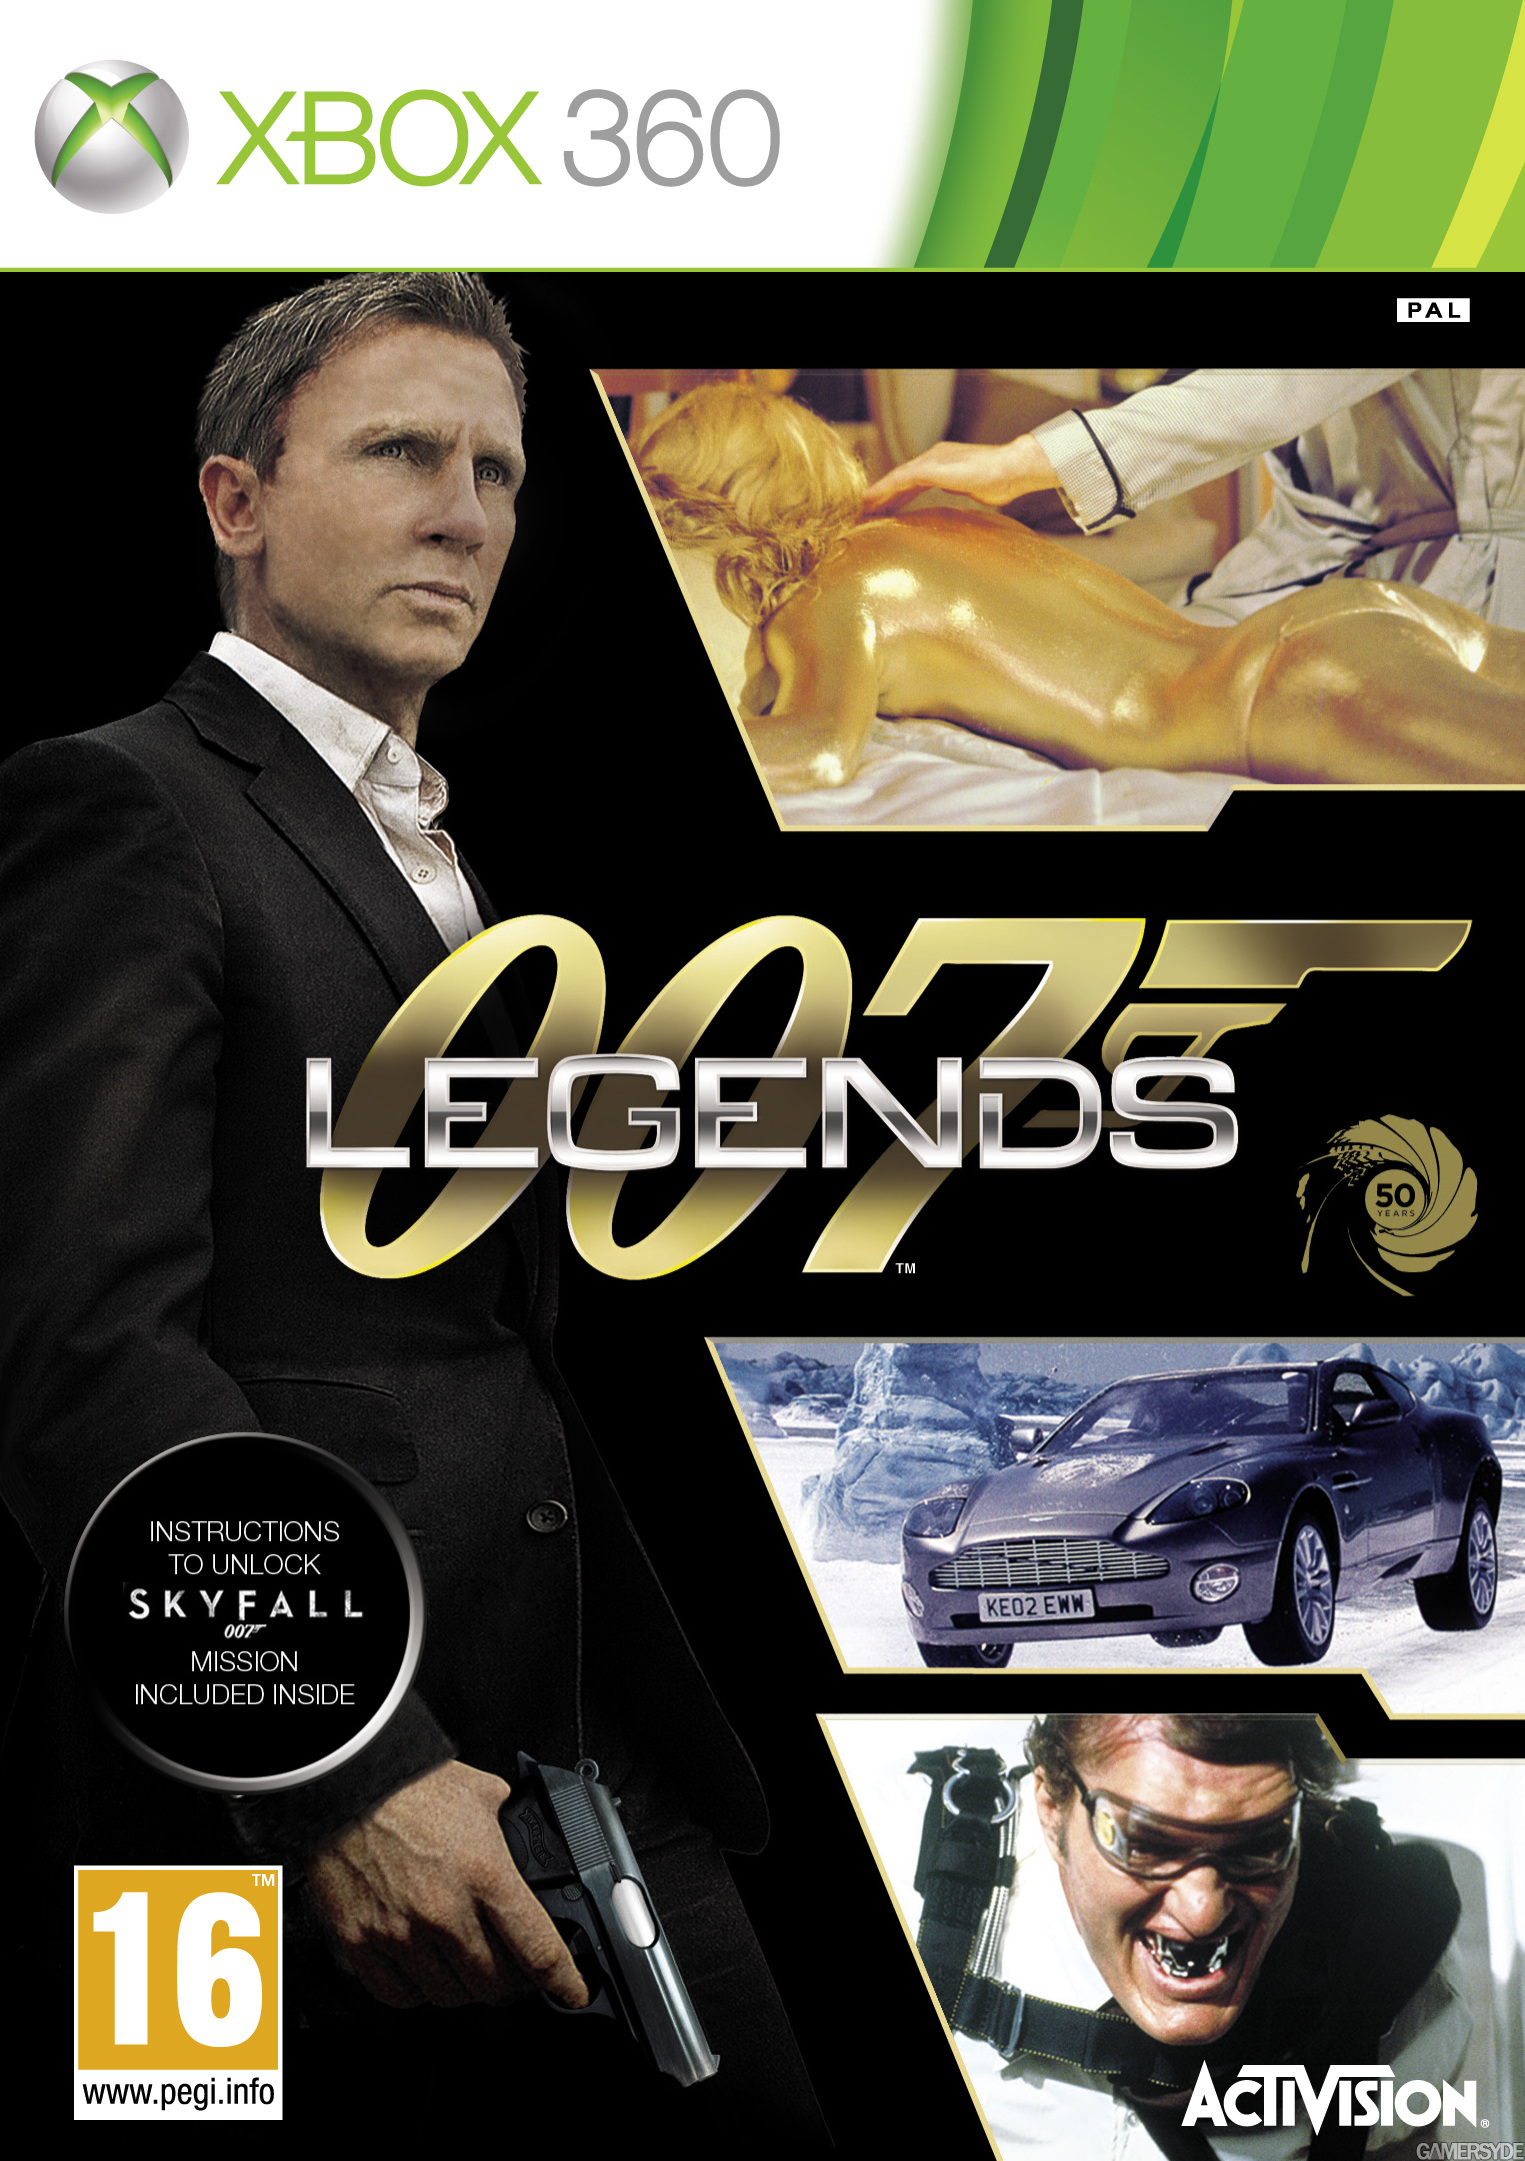 Capa Conquistas E Foto De 007 Legends Confirmam 007 Contra Goldfinger No Game